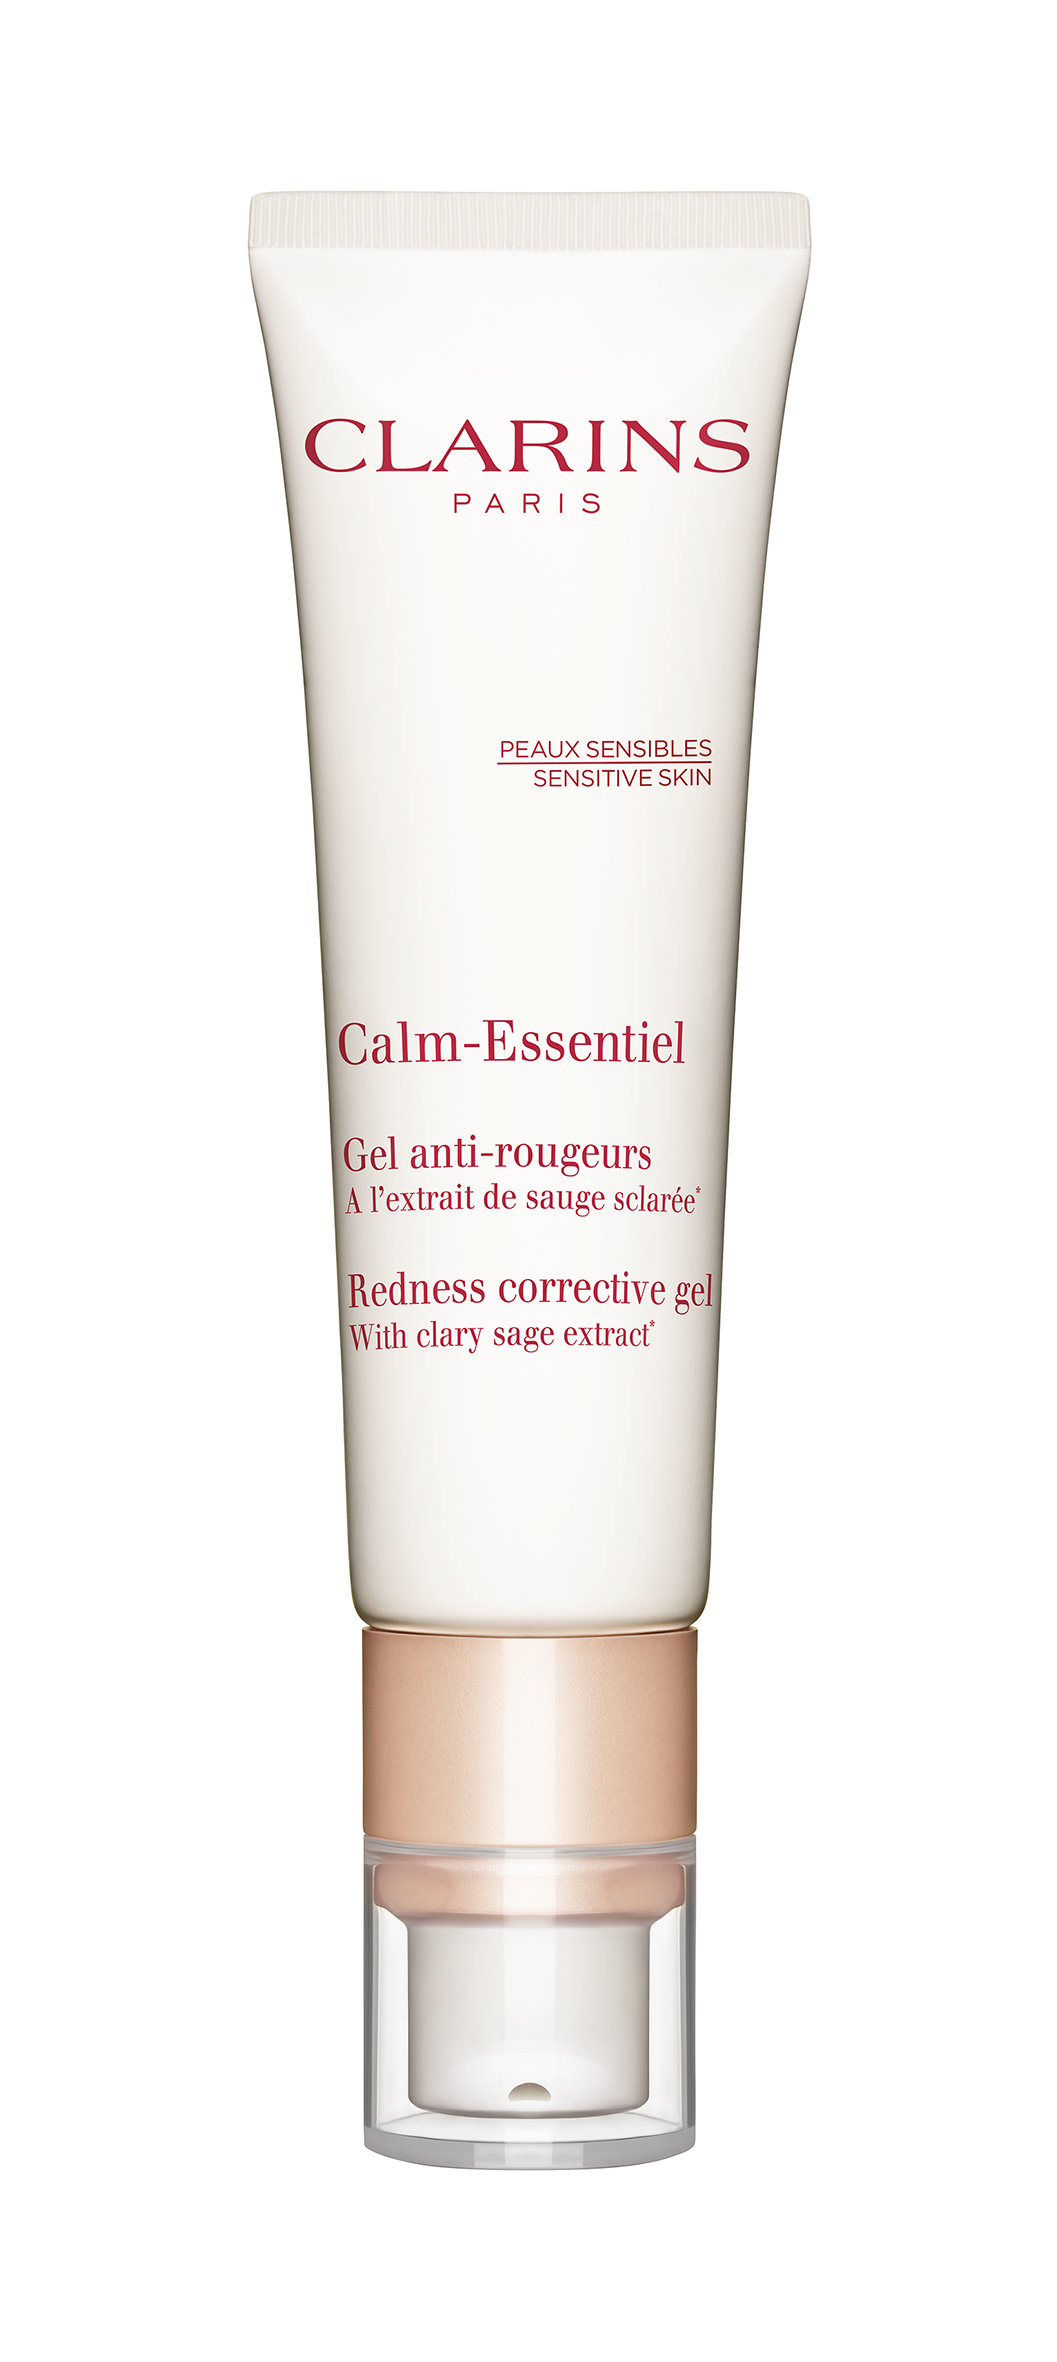 Corrector Rojeces Calm- Essentiel Al Extracto De Salvia Esclarea 30 ml Clarins